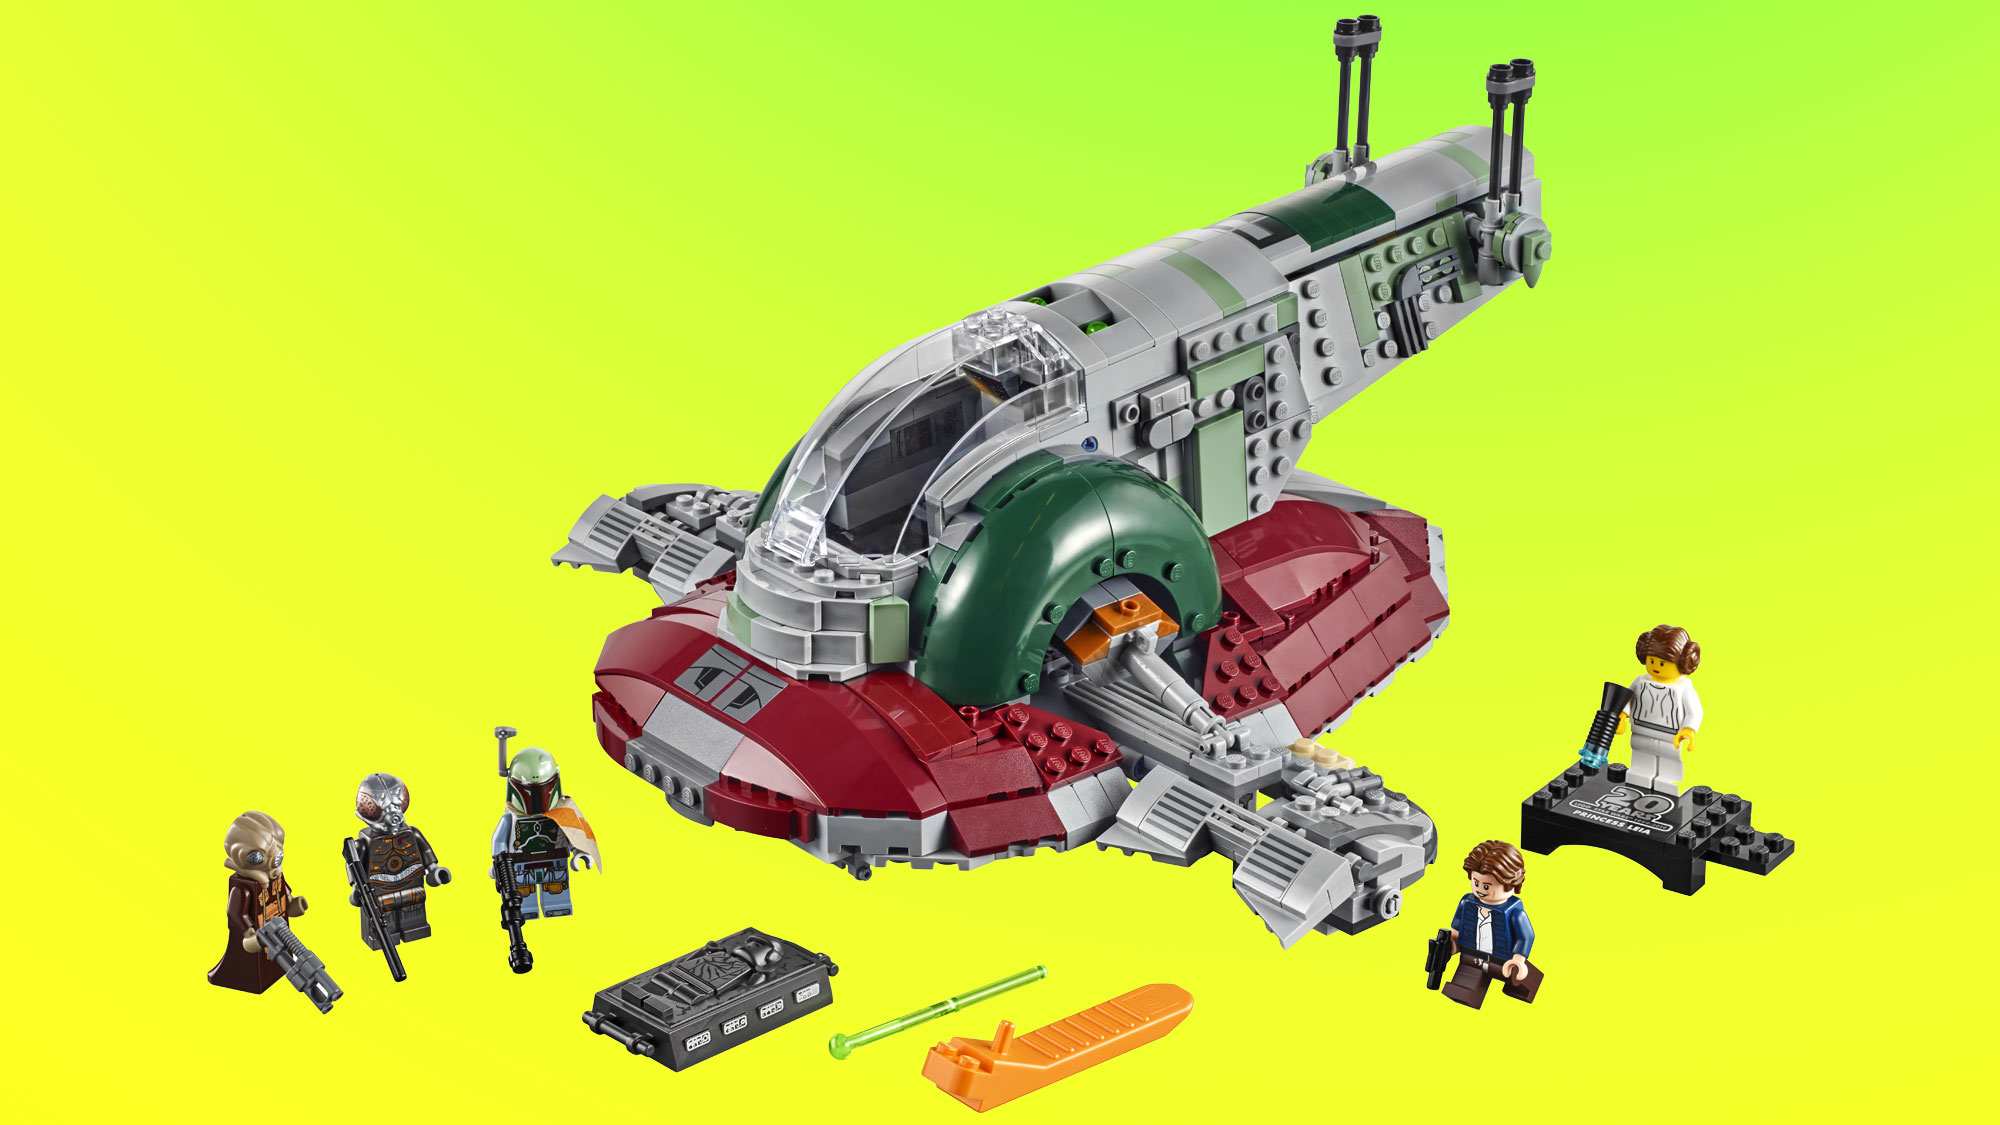 Five Epic Star Wars Lego Anniversary Sets To Celebrate May The